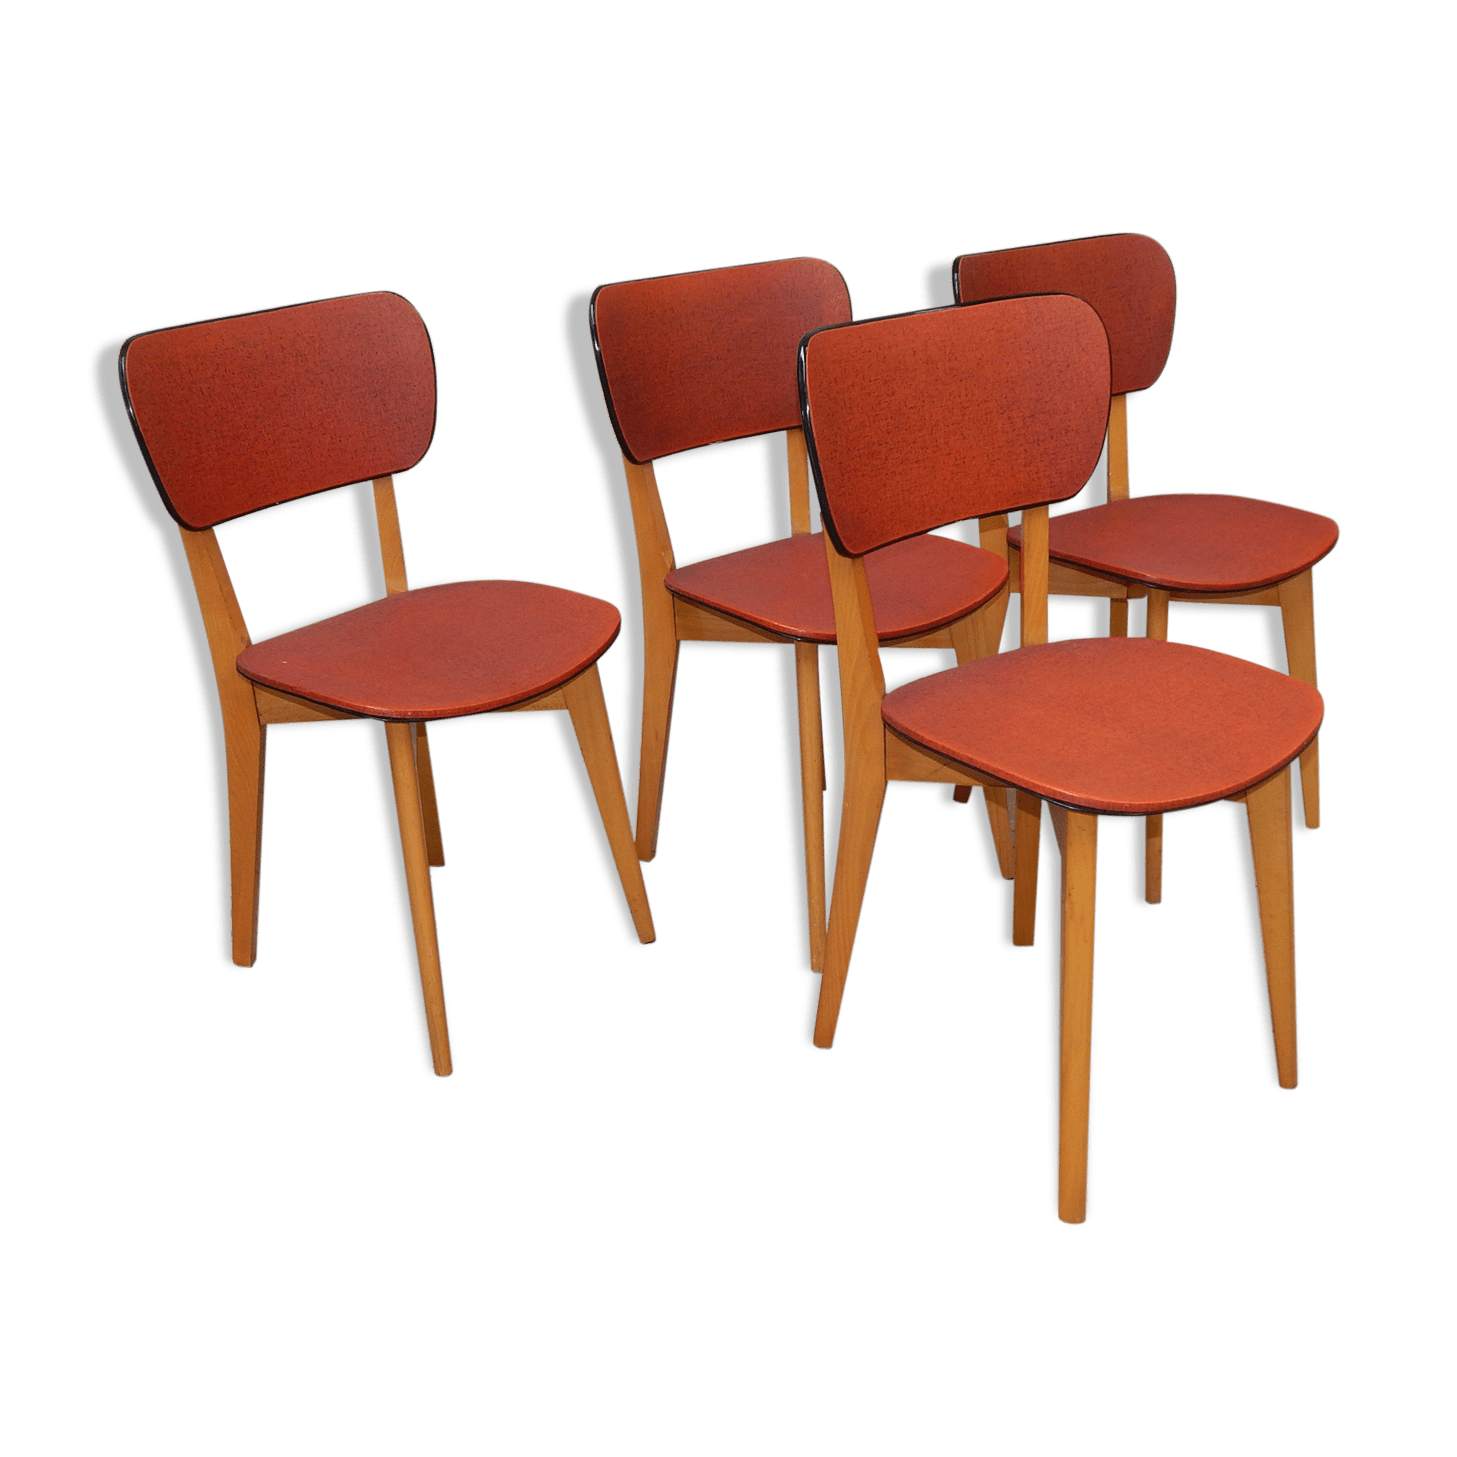 Chaises Rouges Chaises Rouges Design Simple Galettes Chaises Ikea